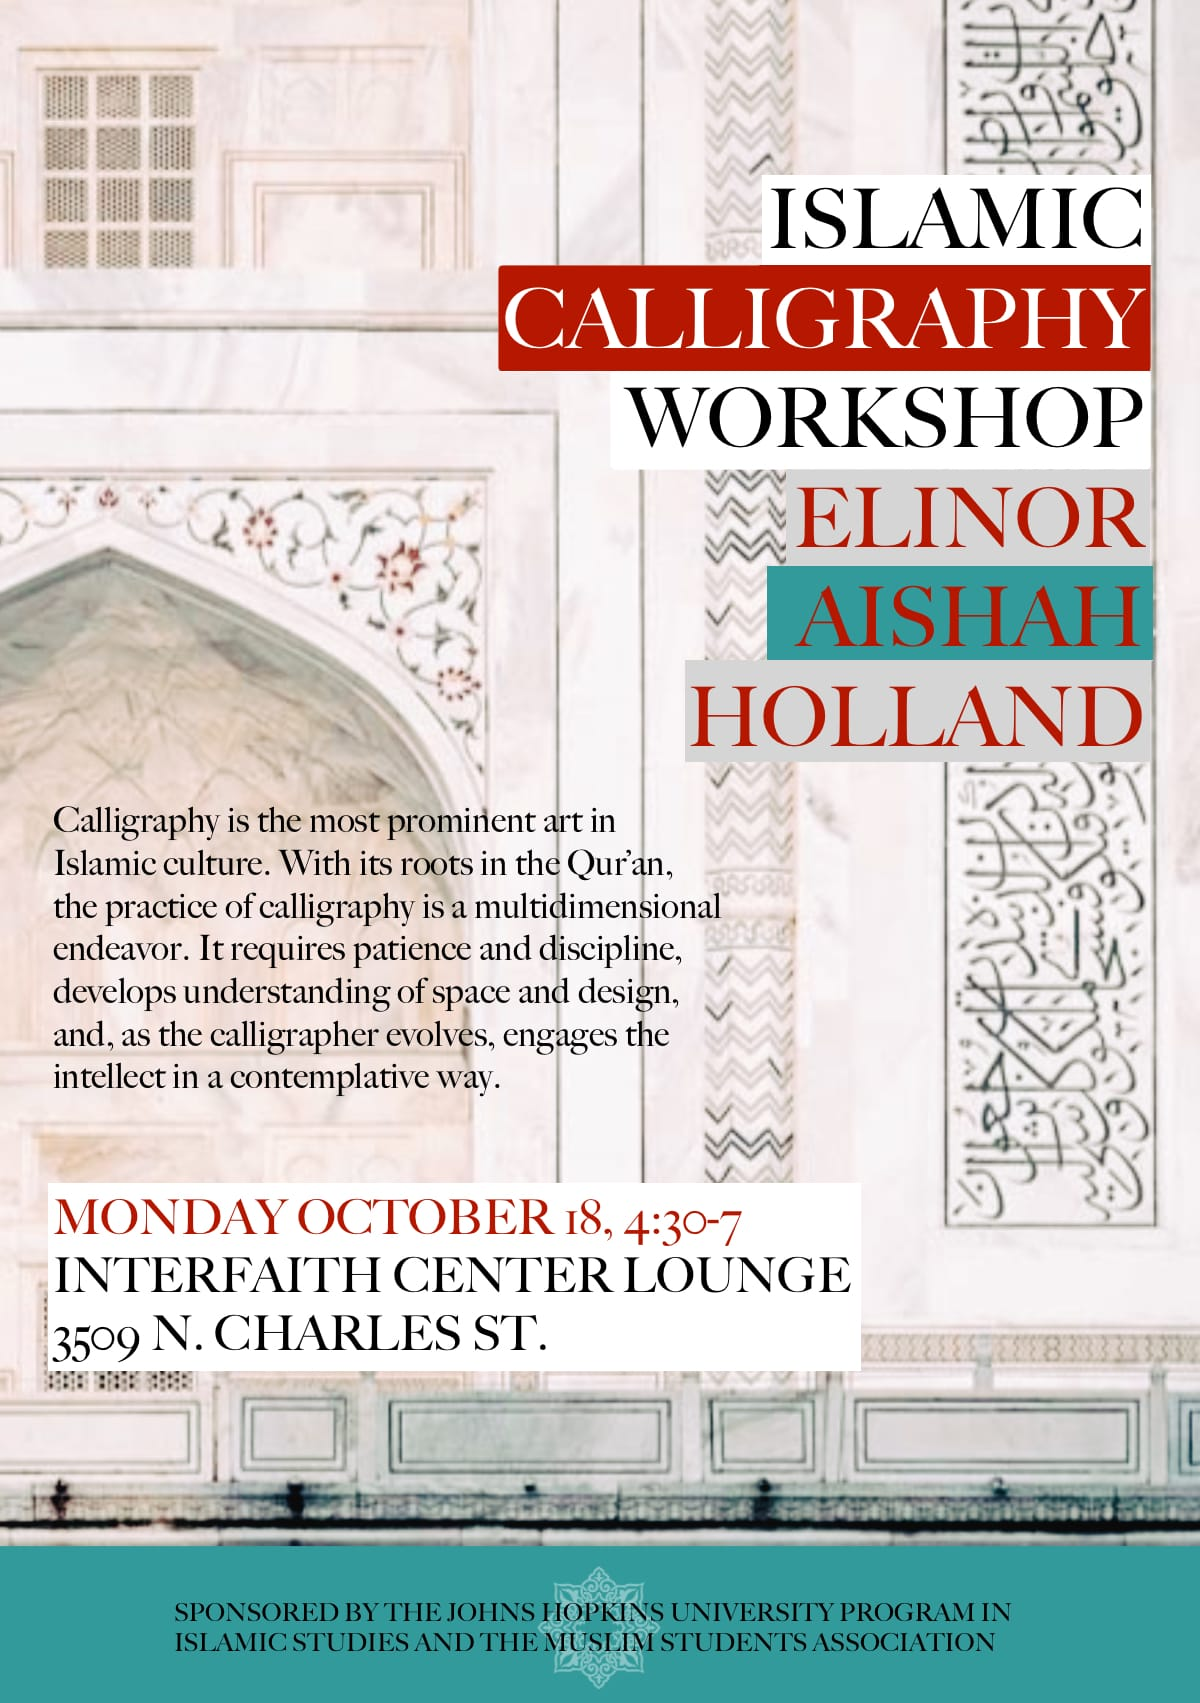 Monday 10/18: Islamic Calligraphy, an In-Person Class for Beginners